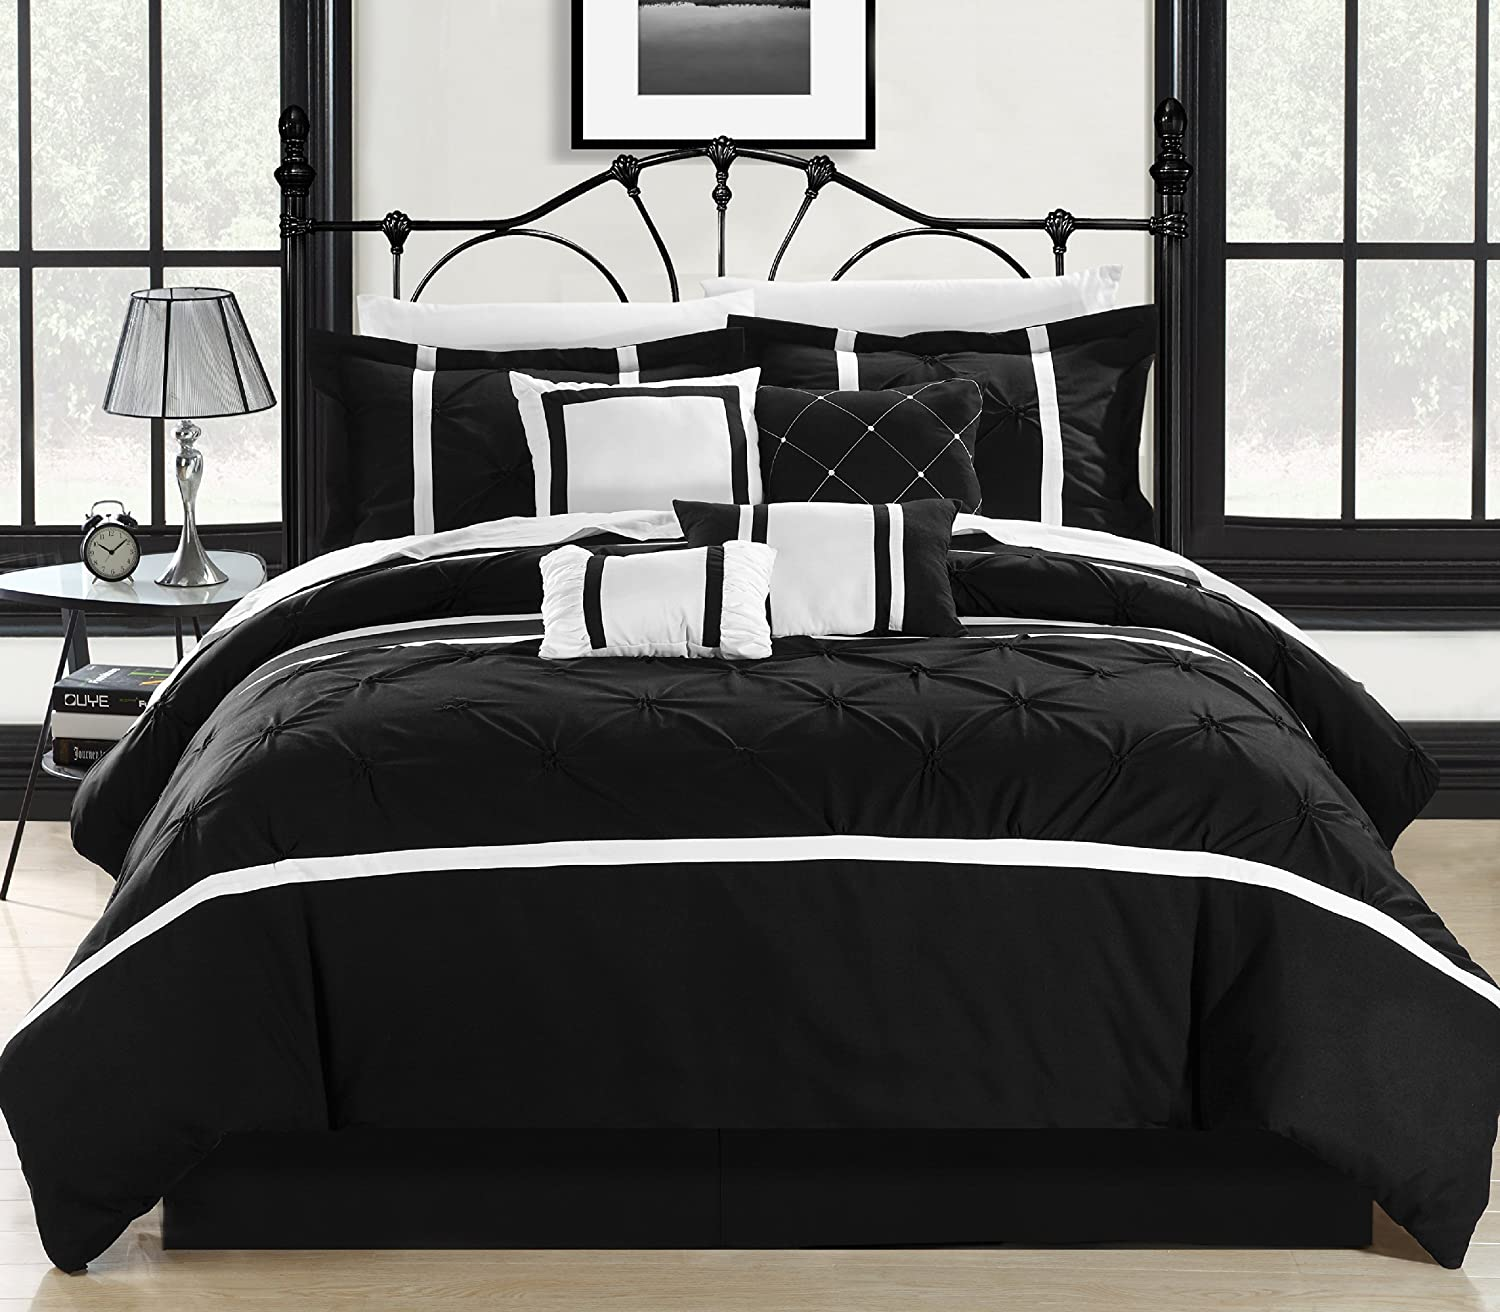 black and white king size comforter sets Amazon.com: Chic Home Vermont White Comforter Set (8 Piece), Queen  black and white king size comforter sets